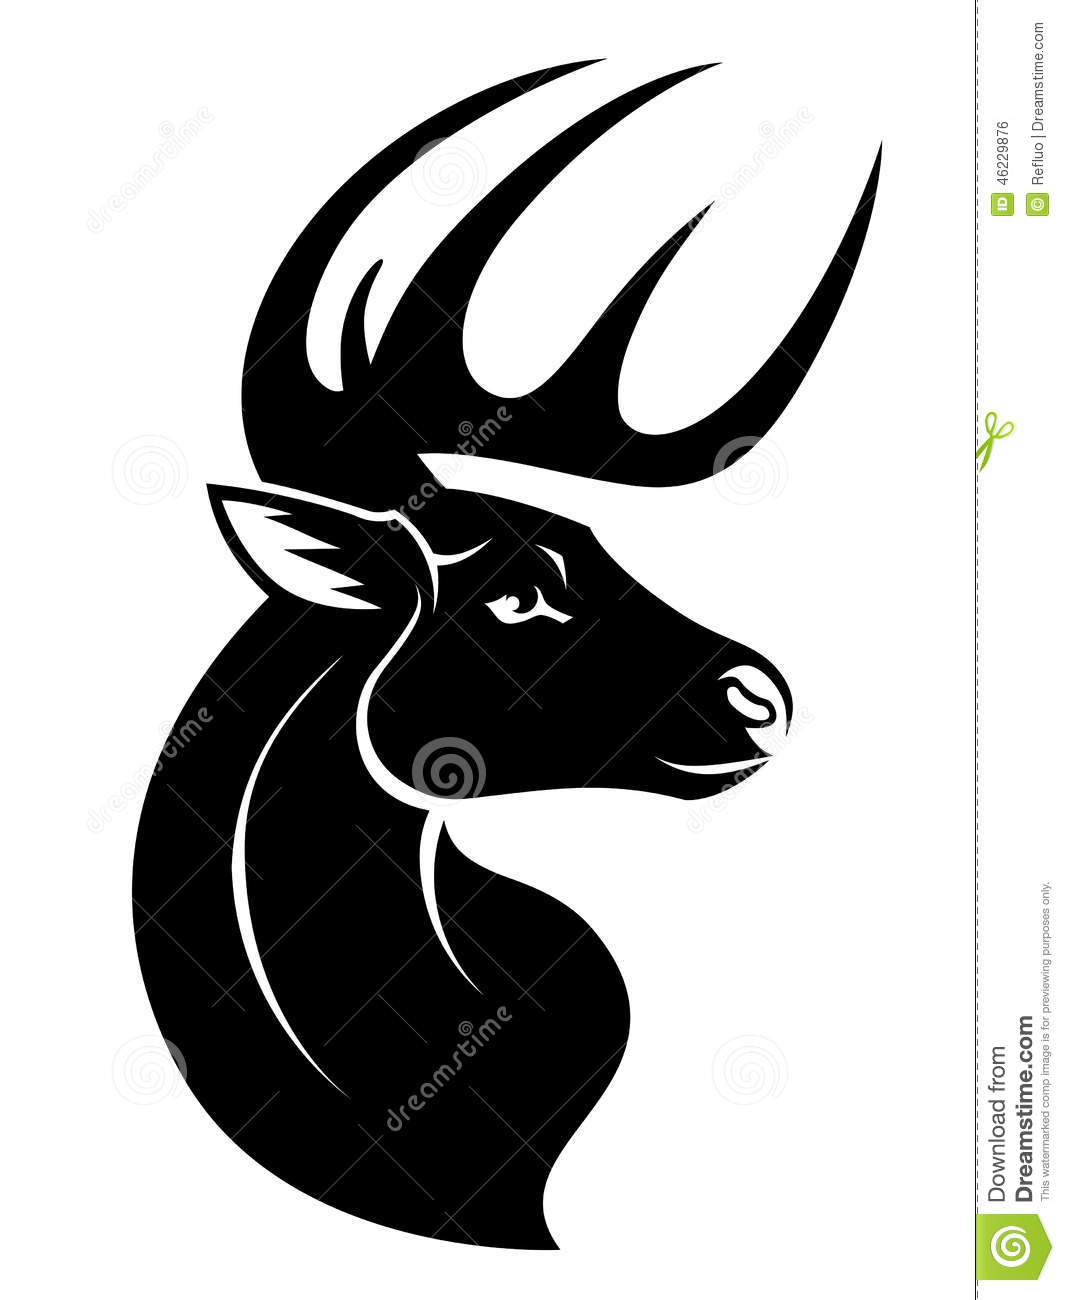 Stylized head of serious deer isolated on white background.